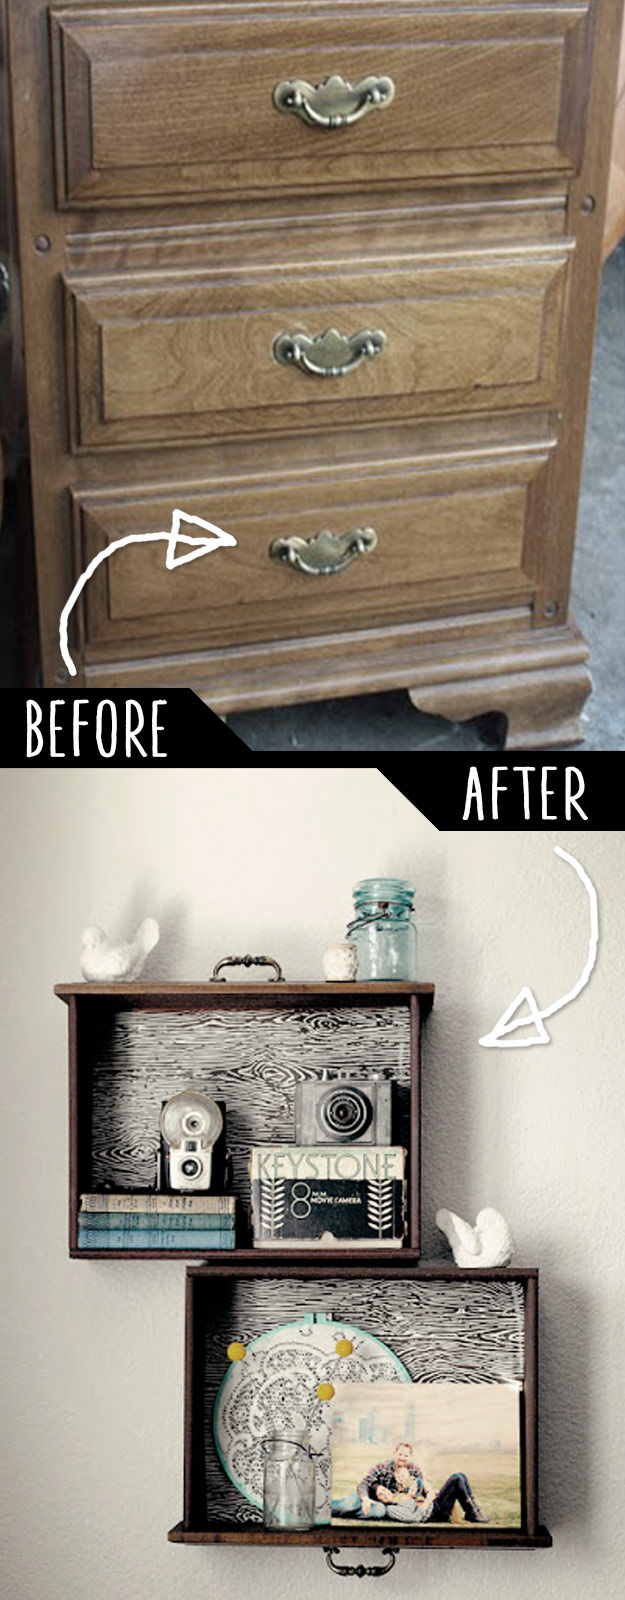 39 clever diy furniture hacks diy joy Cheap home decor on pinterest